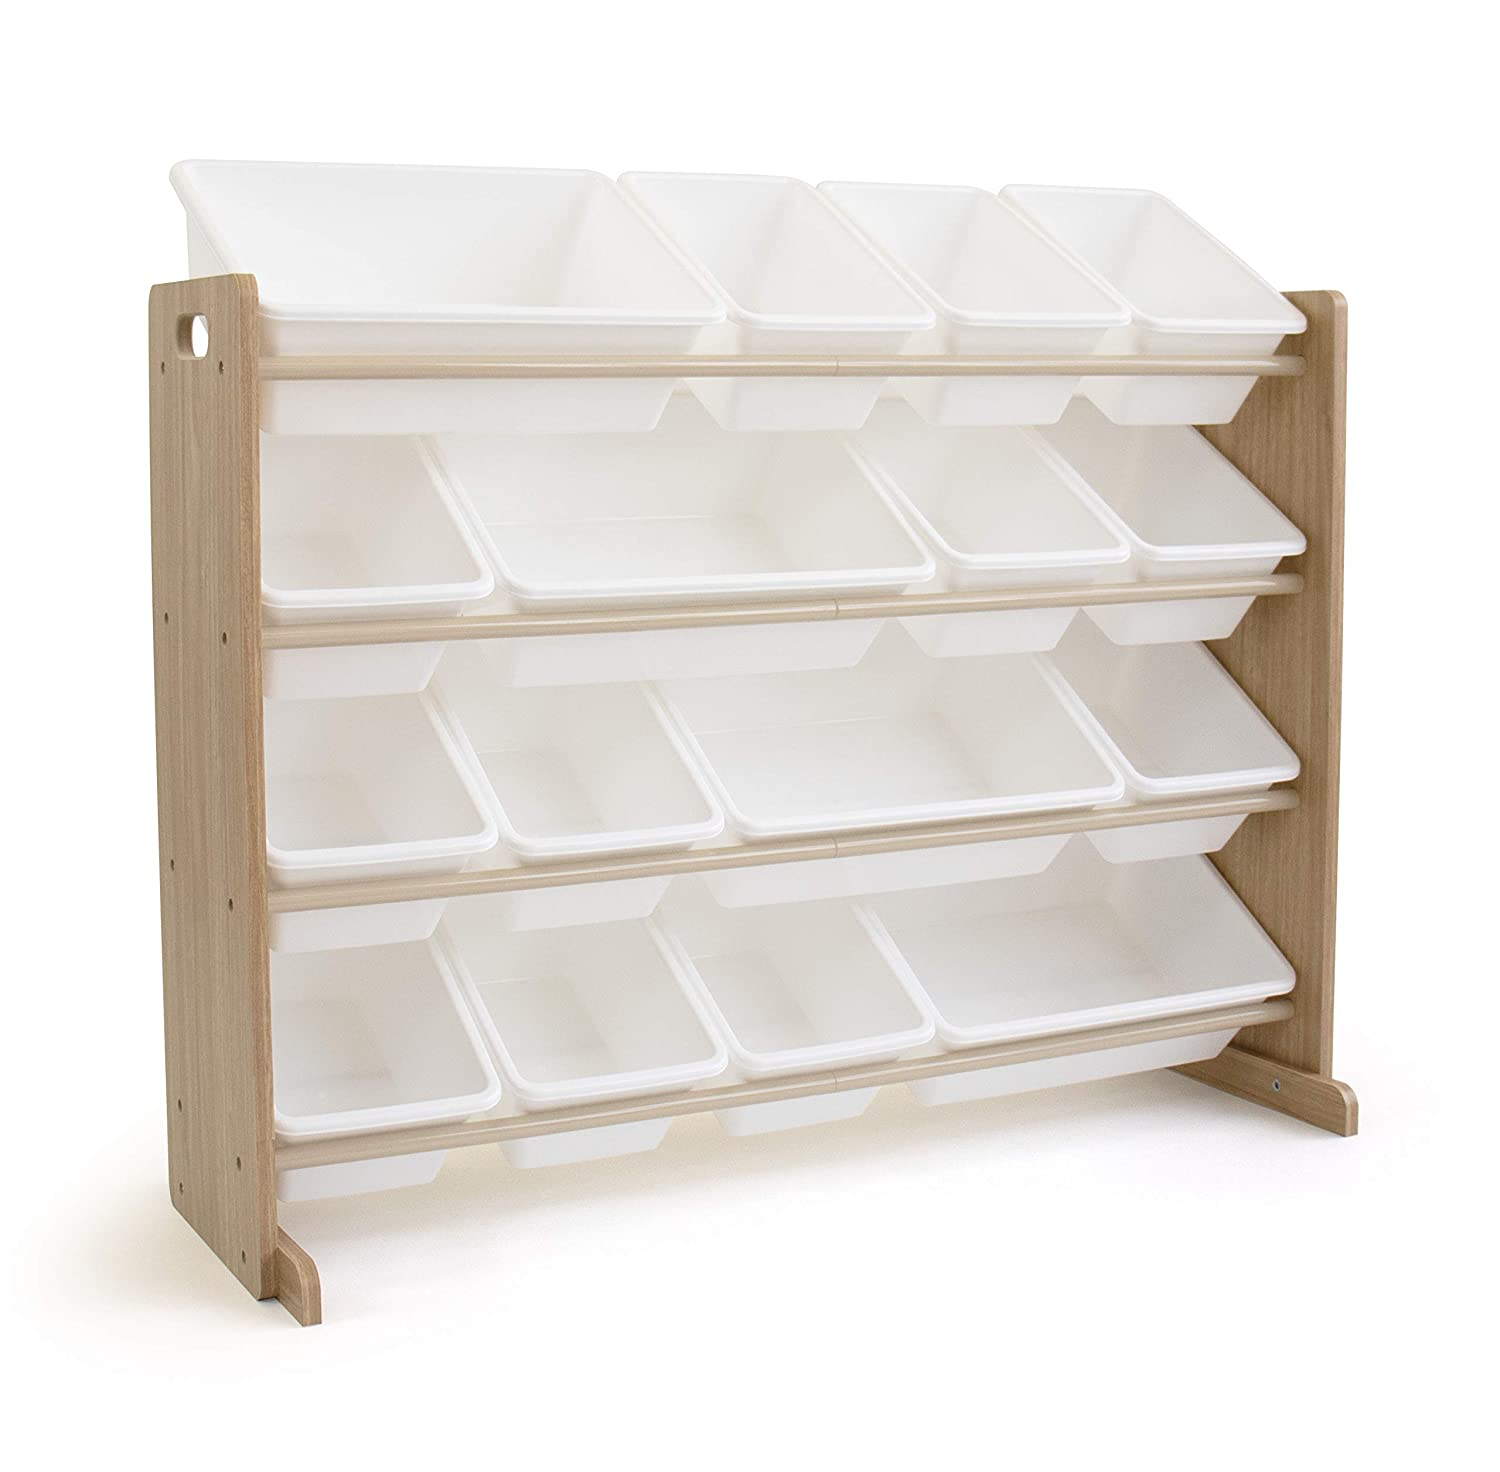 Tot Tutors WO166 Super-Sized Toy Storage Organizer w/ 16 Bin, Universal, Natural/White